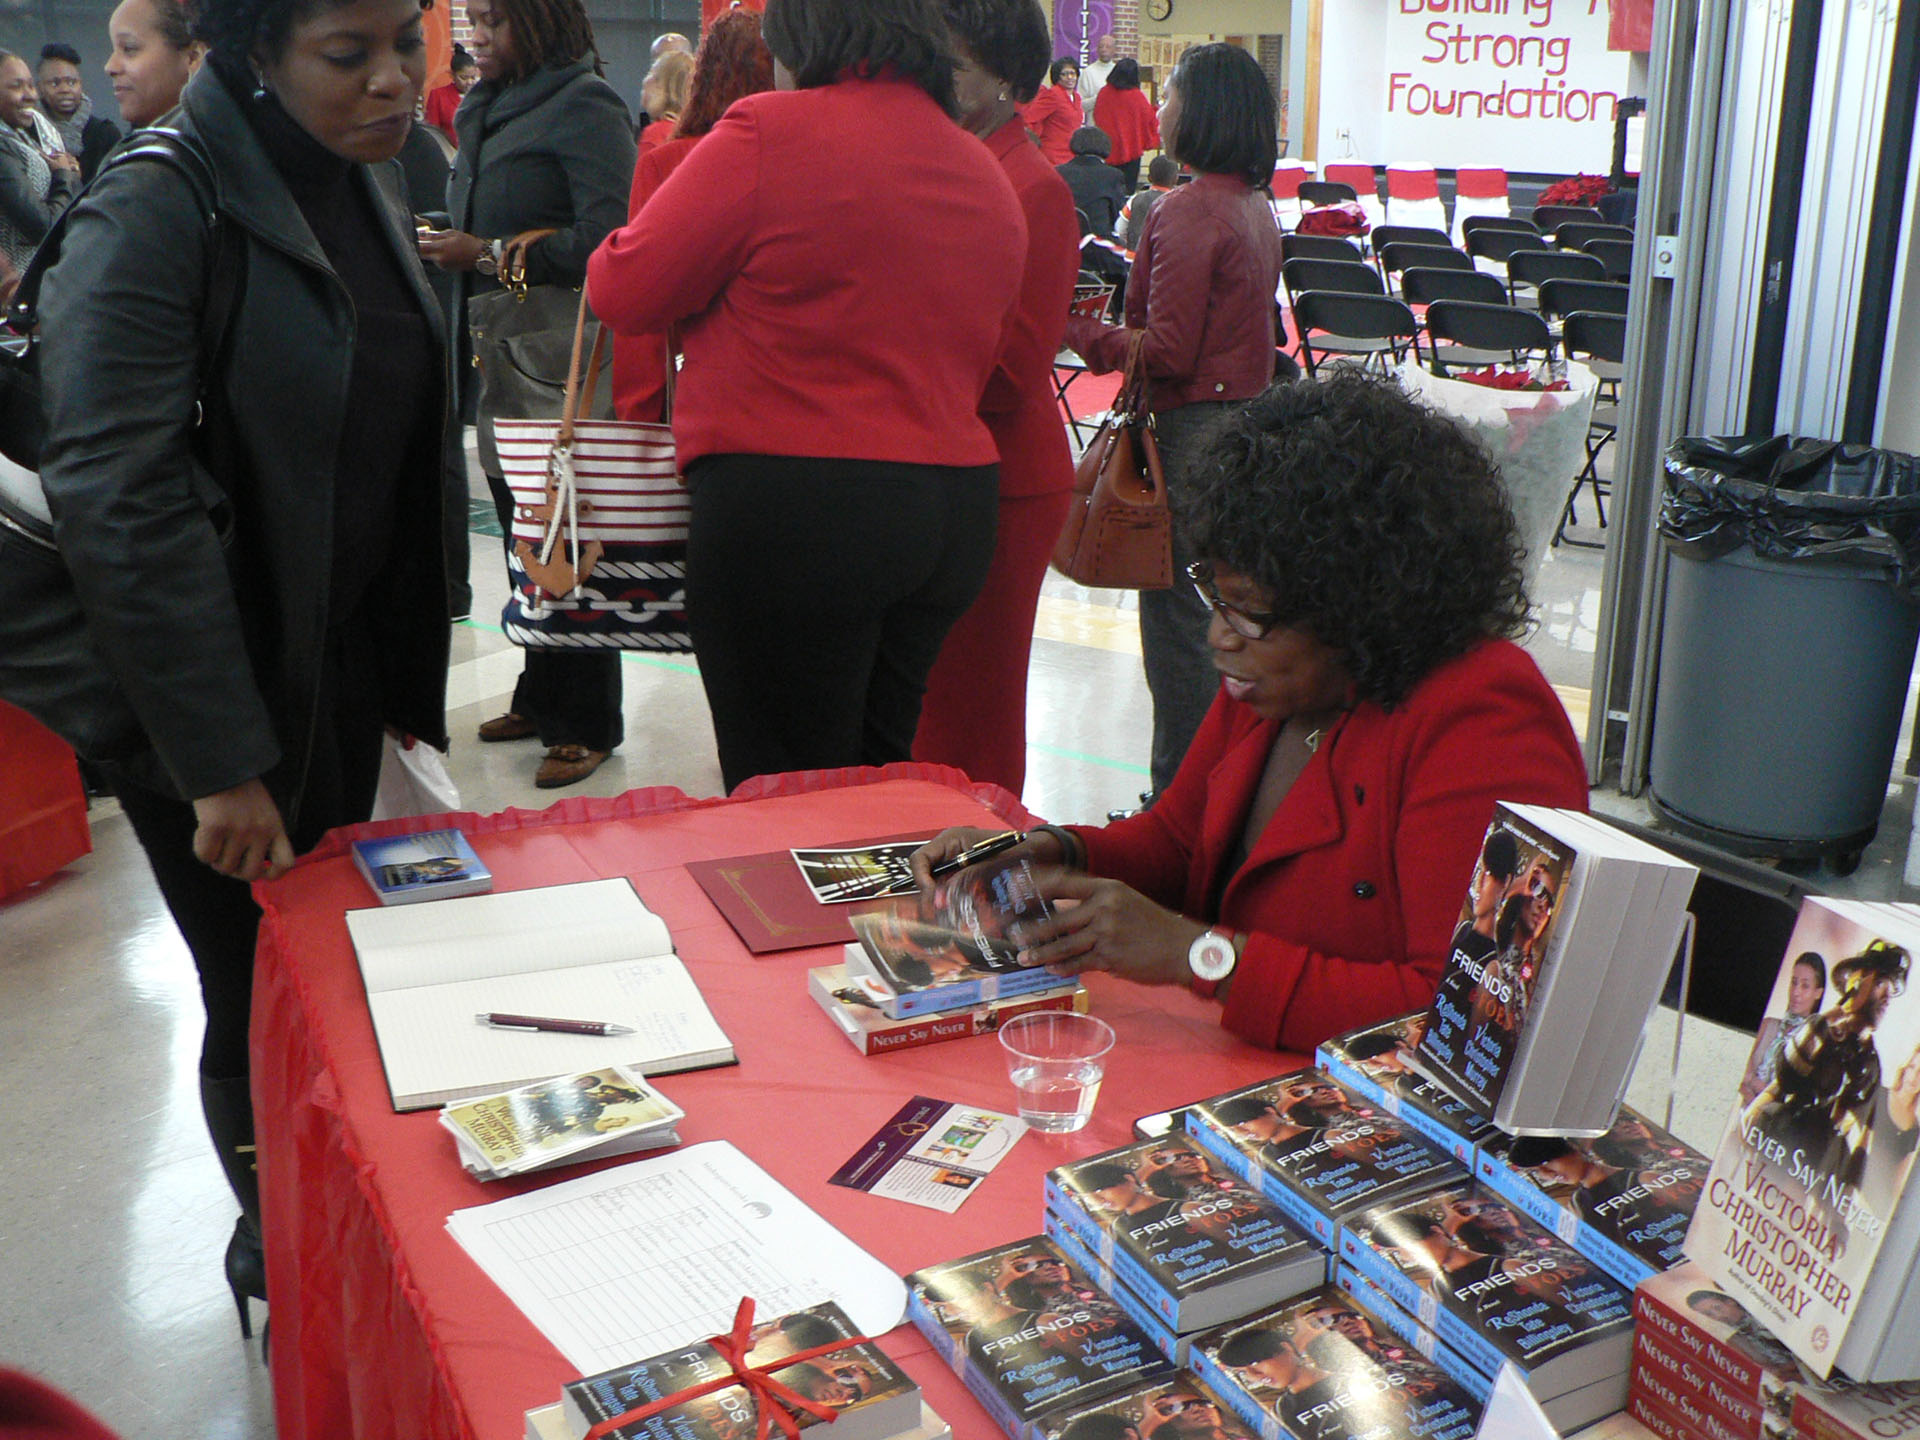 Red Carpet Showcase event highlighting authors, artist